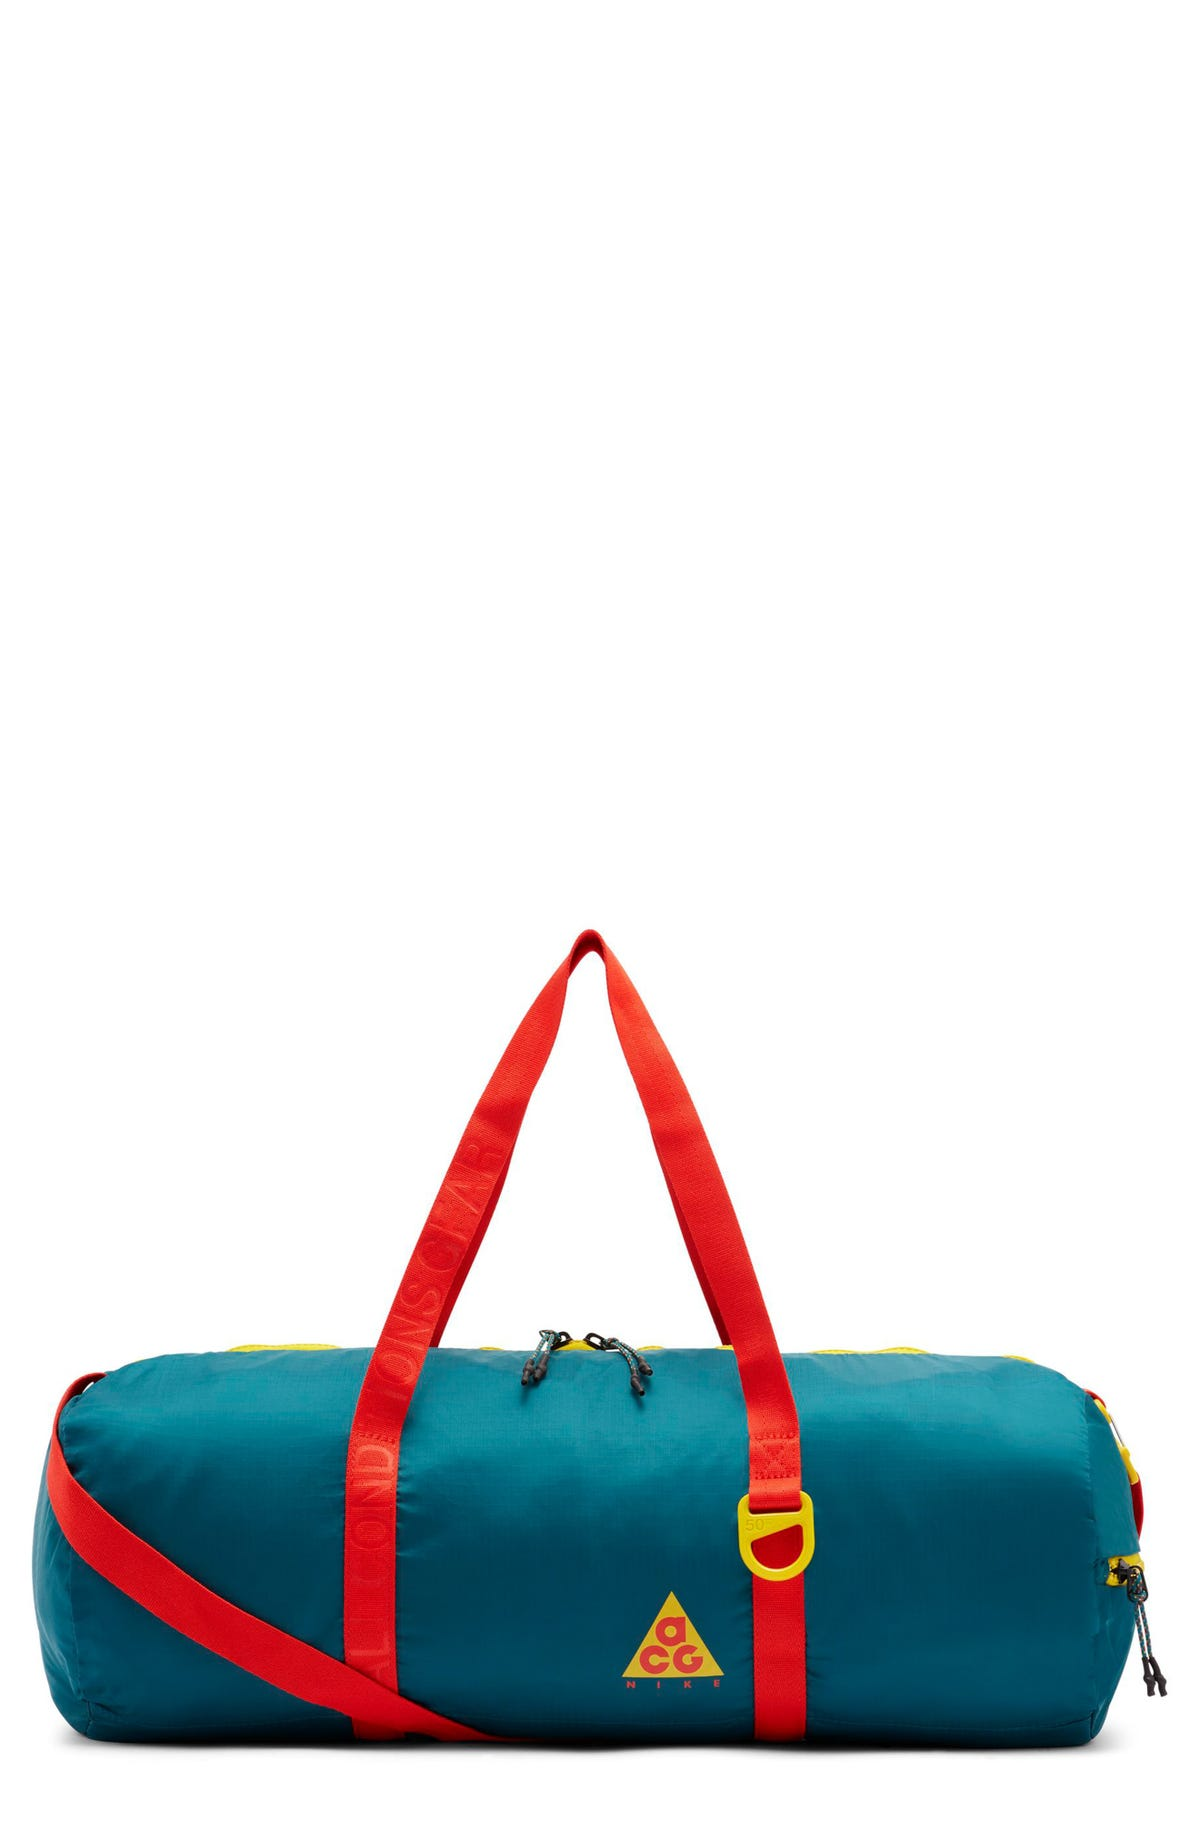 7ebfb391e6ac3 Best Gym Bags For Women - Fitness Totes